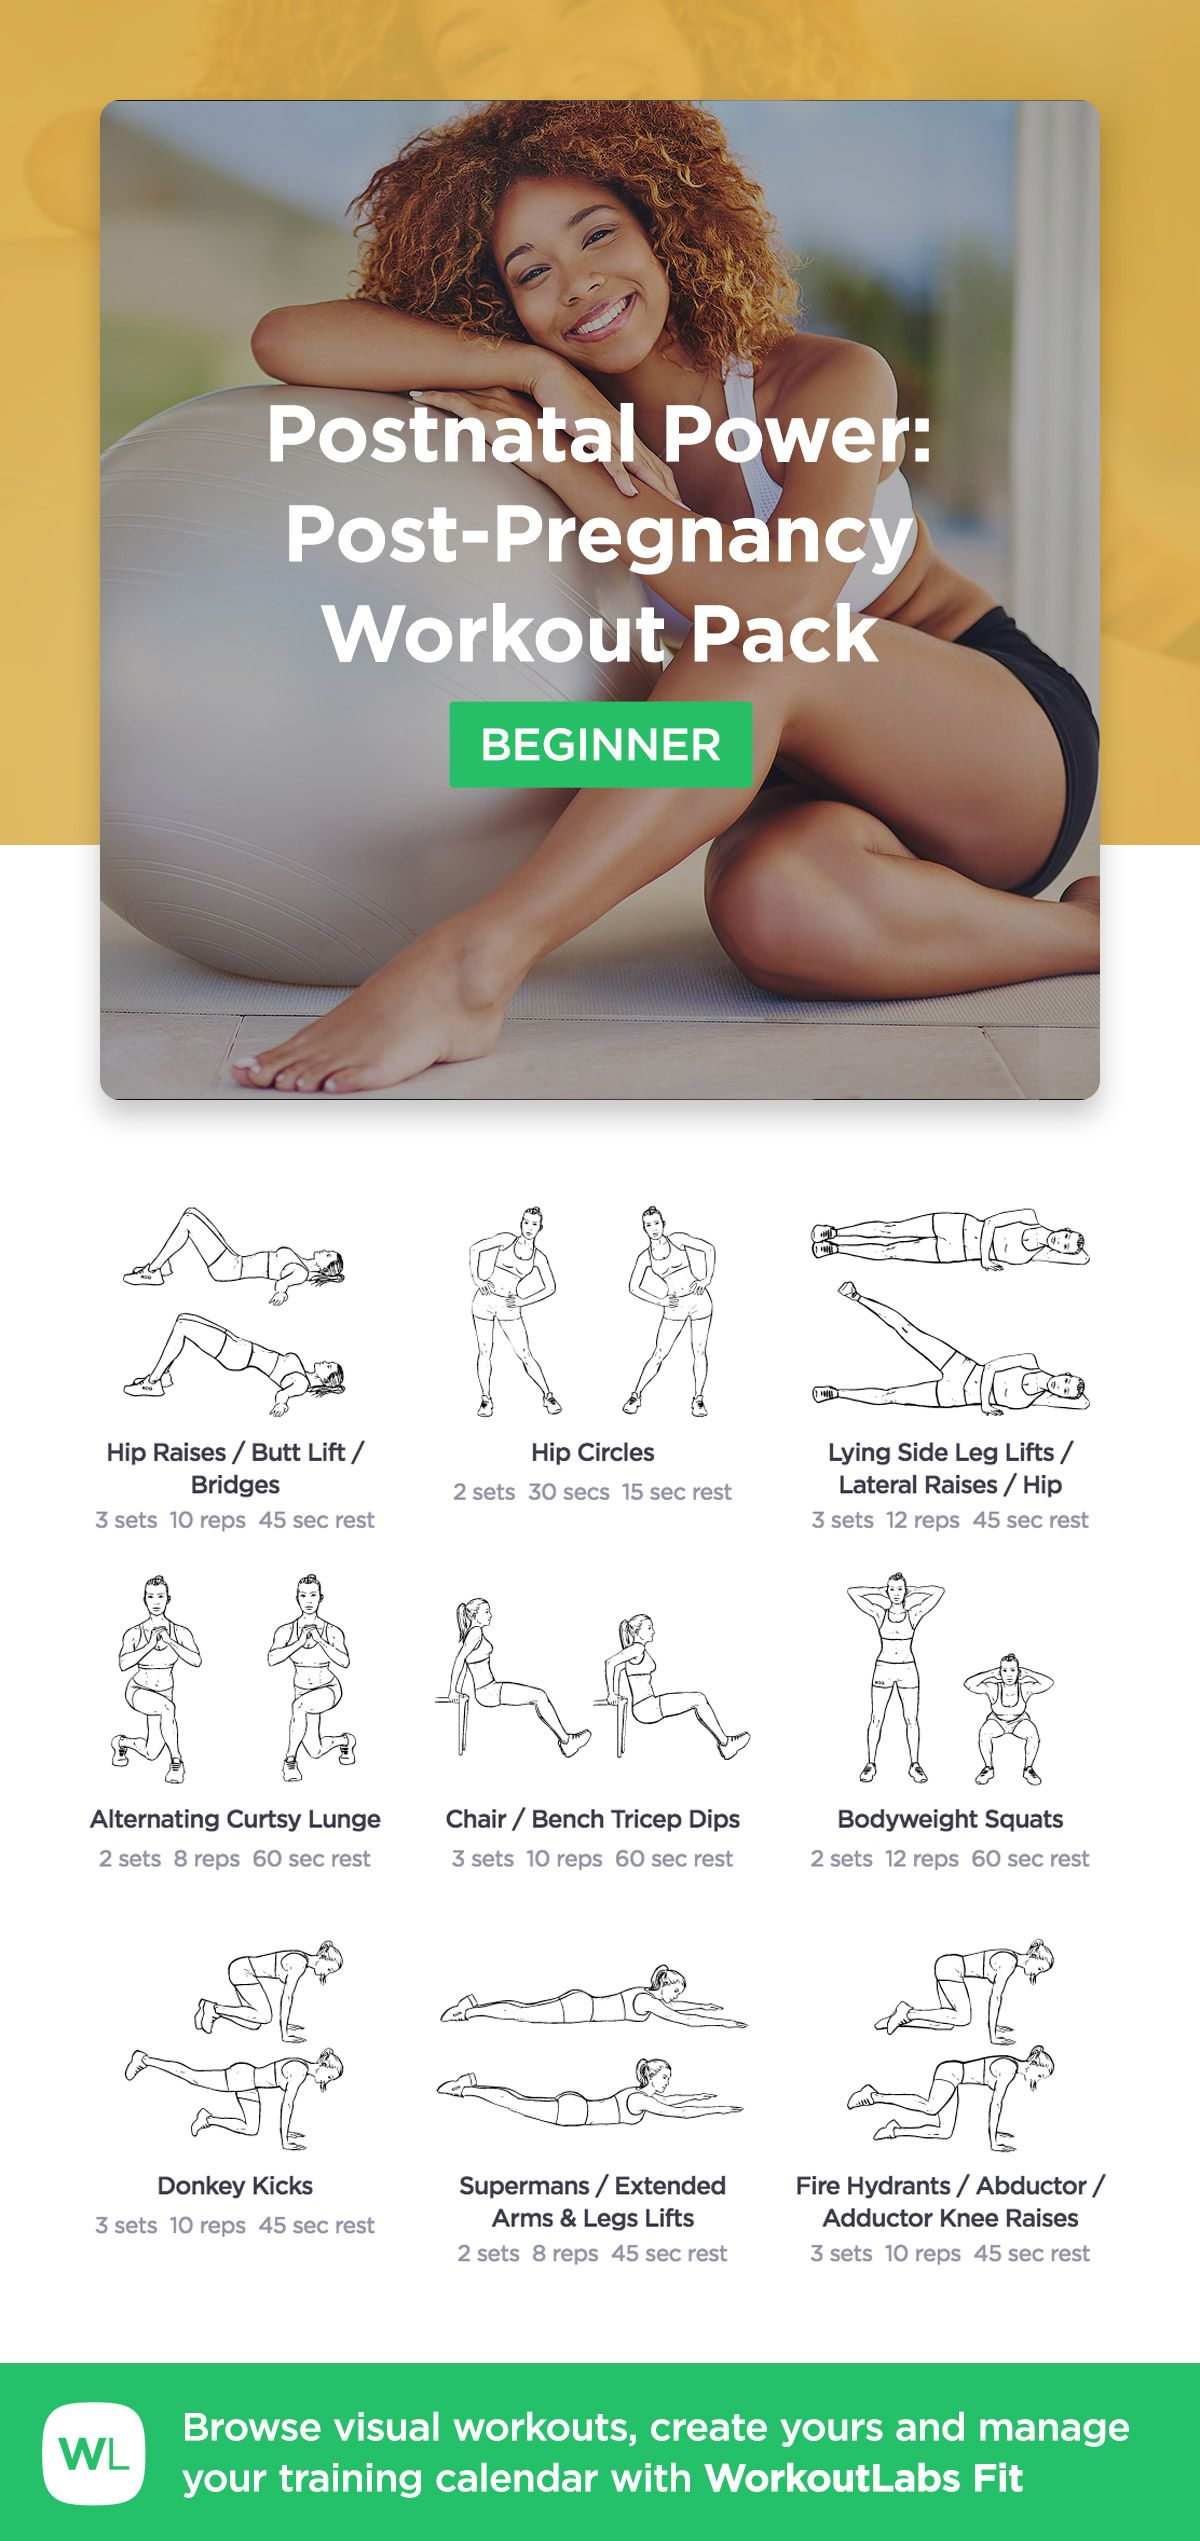 Postnatal Power Post Pregnancy Workout Pack by WorkoutLabs Fit